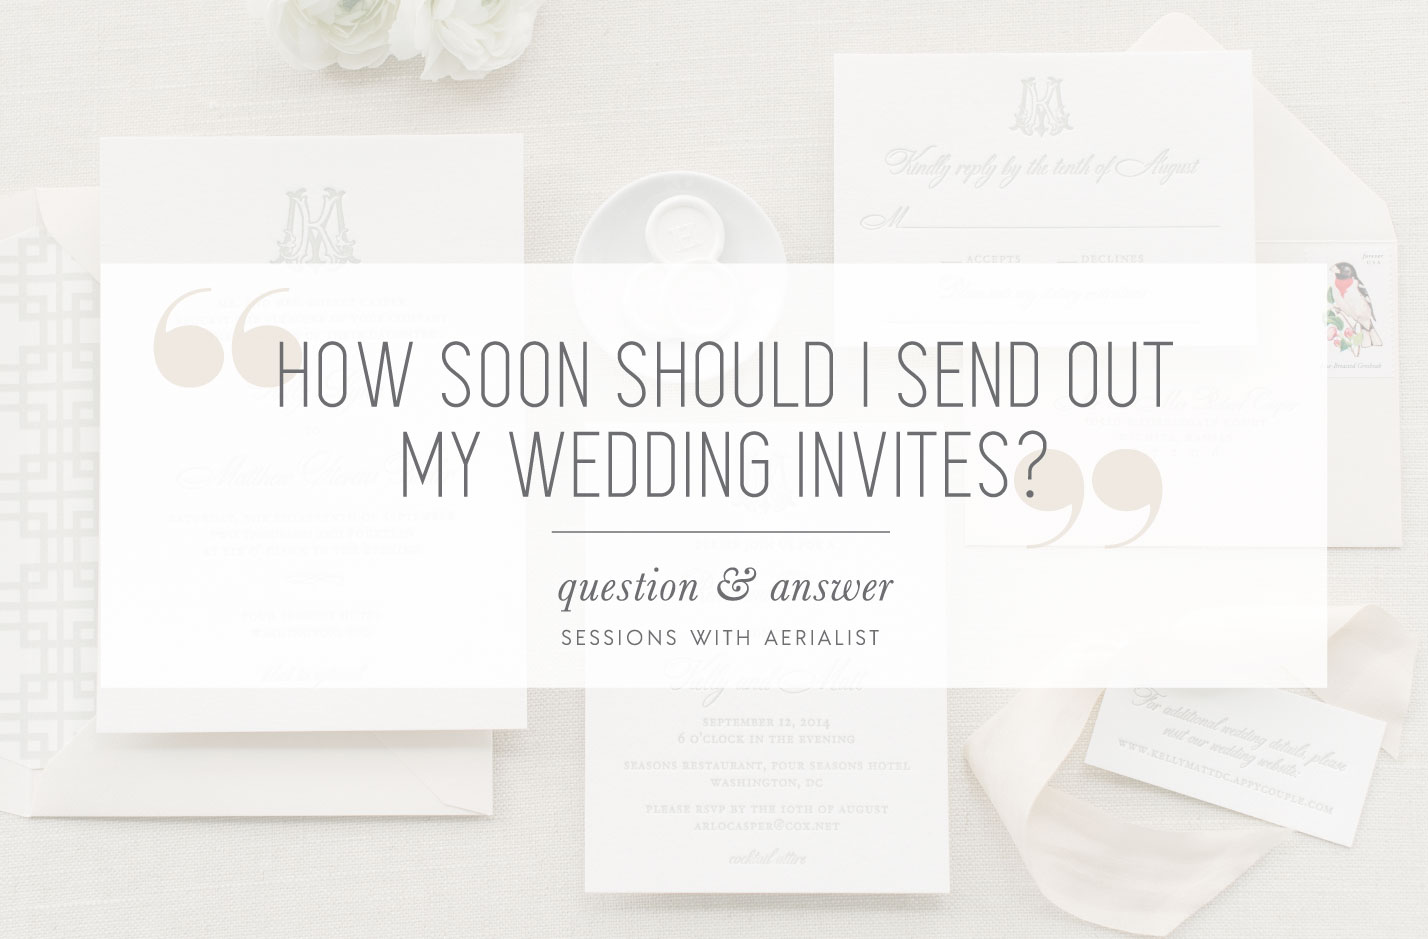 When To Send Out Wedding Invitations For Destination Wedding: When To Send Out Your Wedding Invitations